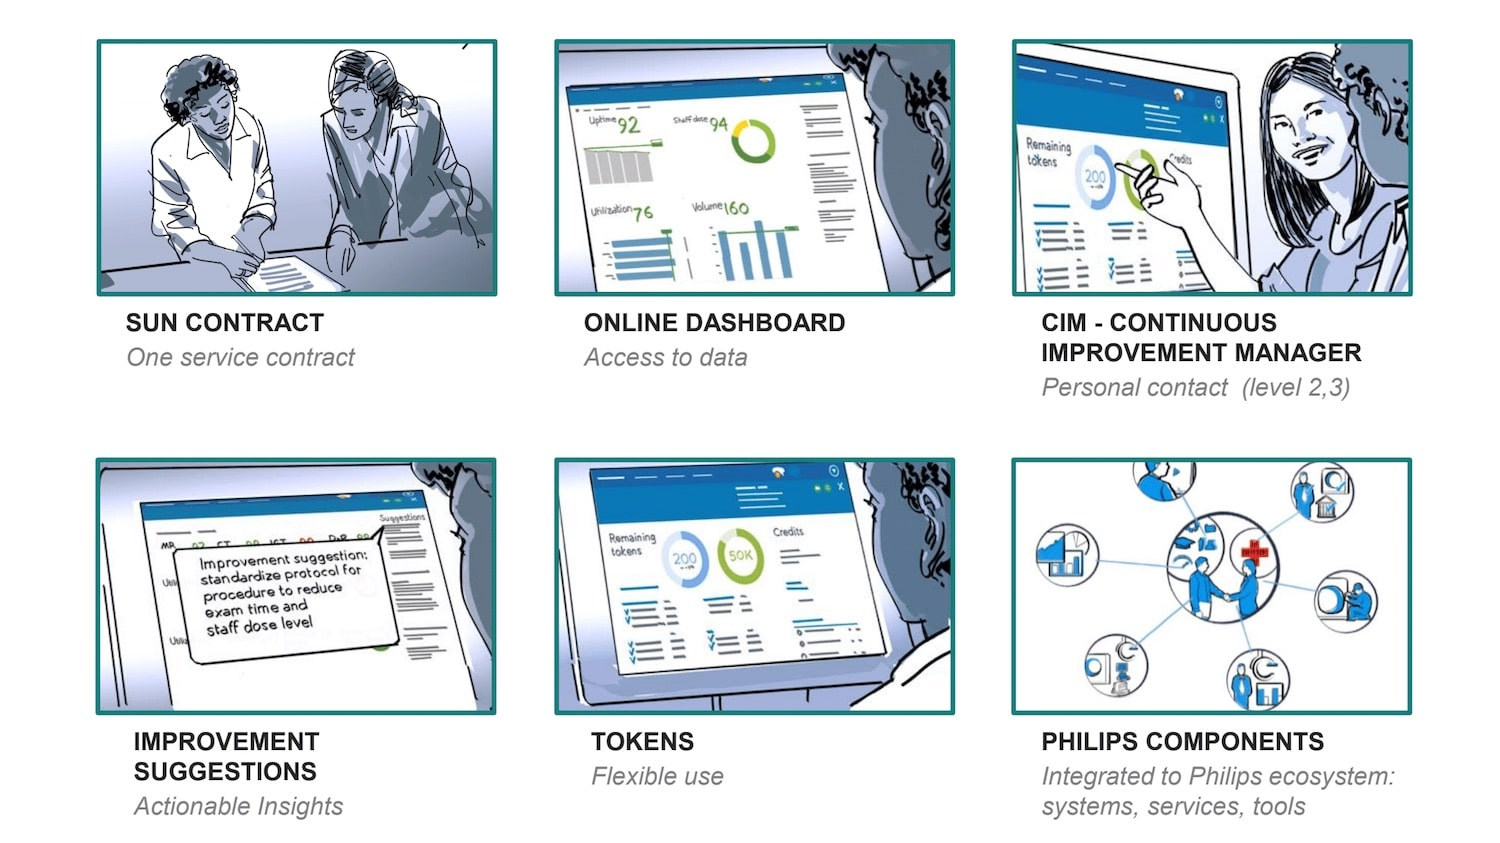 an overview of the service elements, from the dashboard to the expert advice